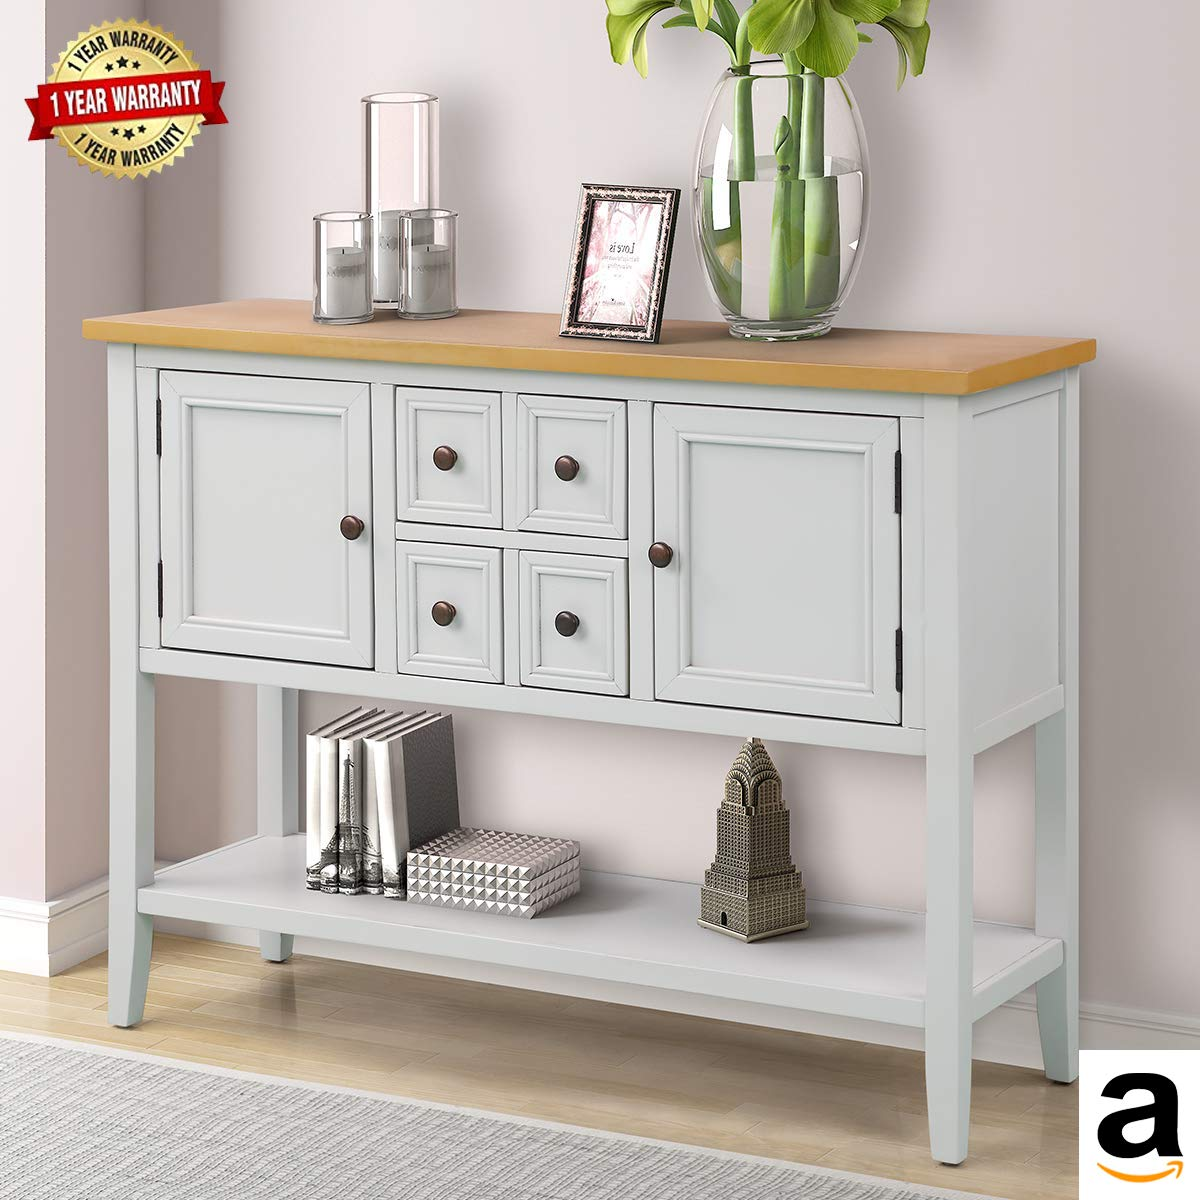 MIERES 1 Harper&Bright Designs Cambridge Series Buffet Sideboard Console Table with Bottom Shelf (Ivory White),